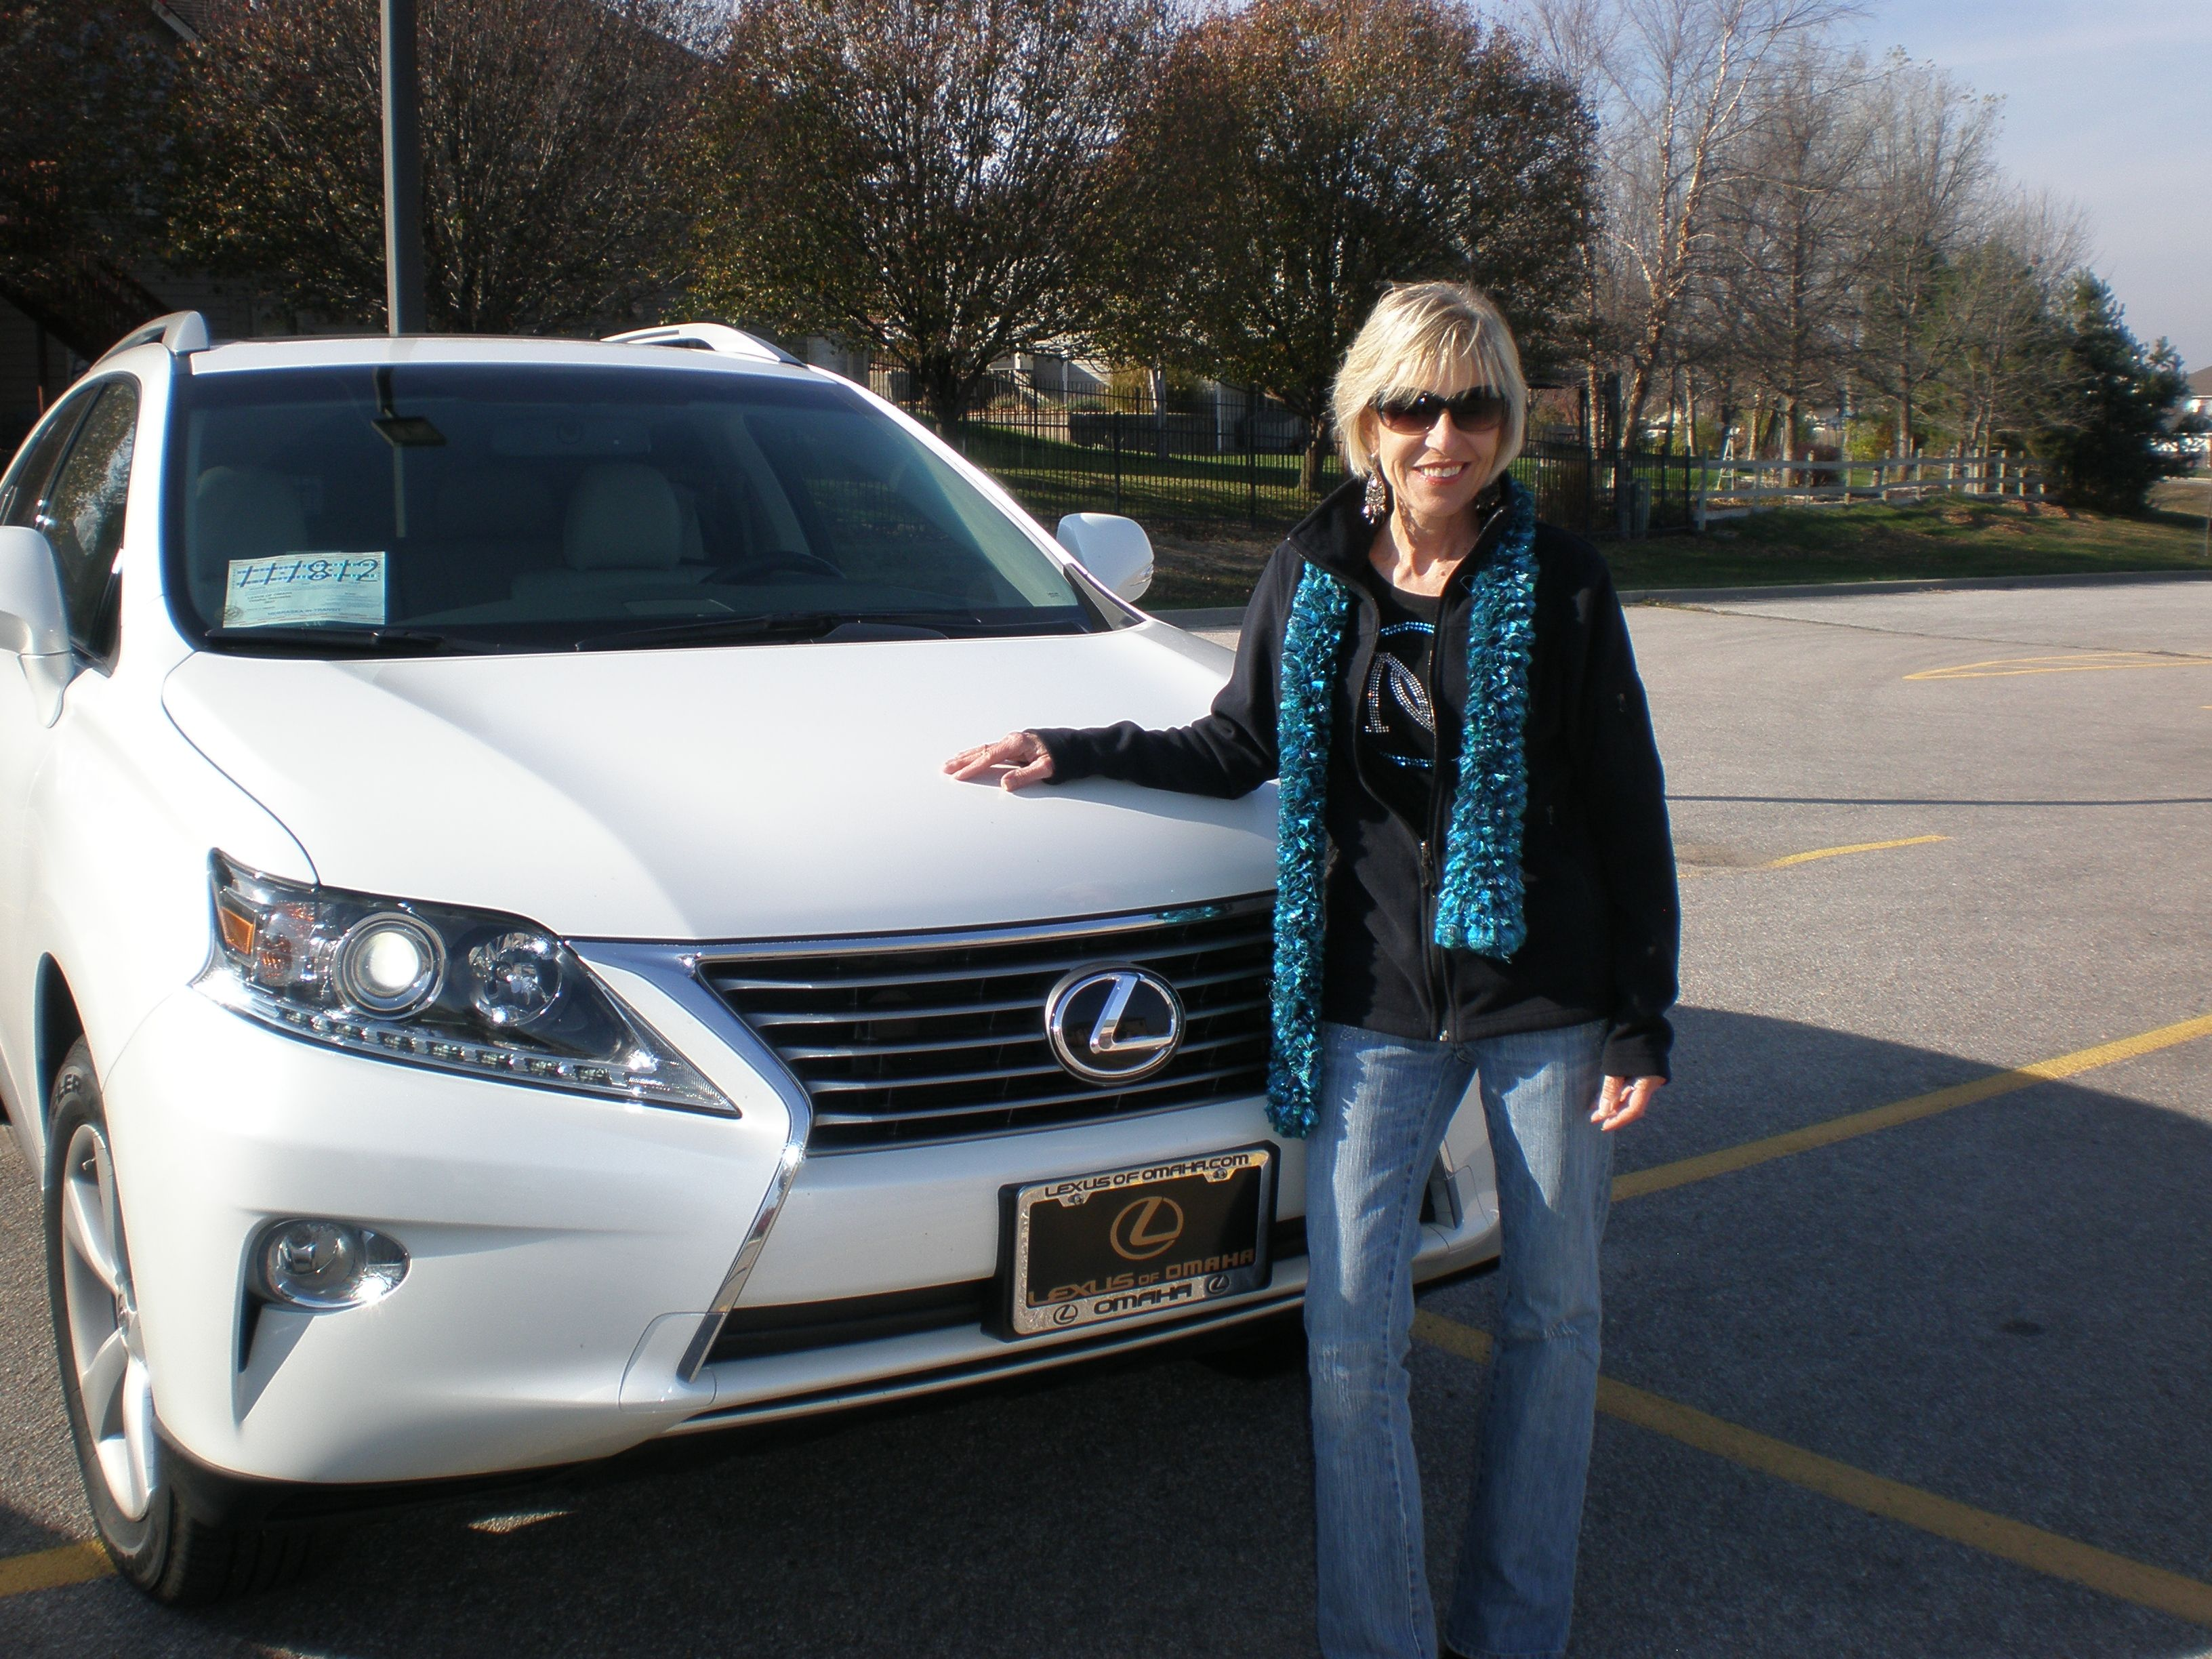 Another nerium lexus car earner need new wheels www betsyrsmith me